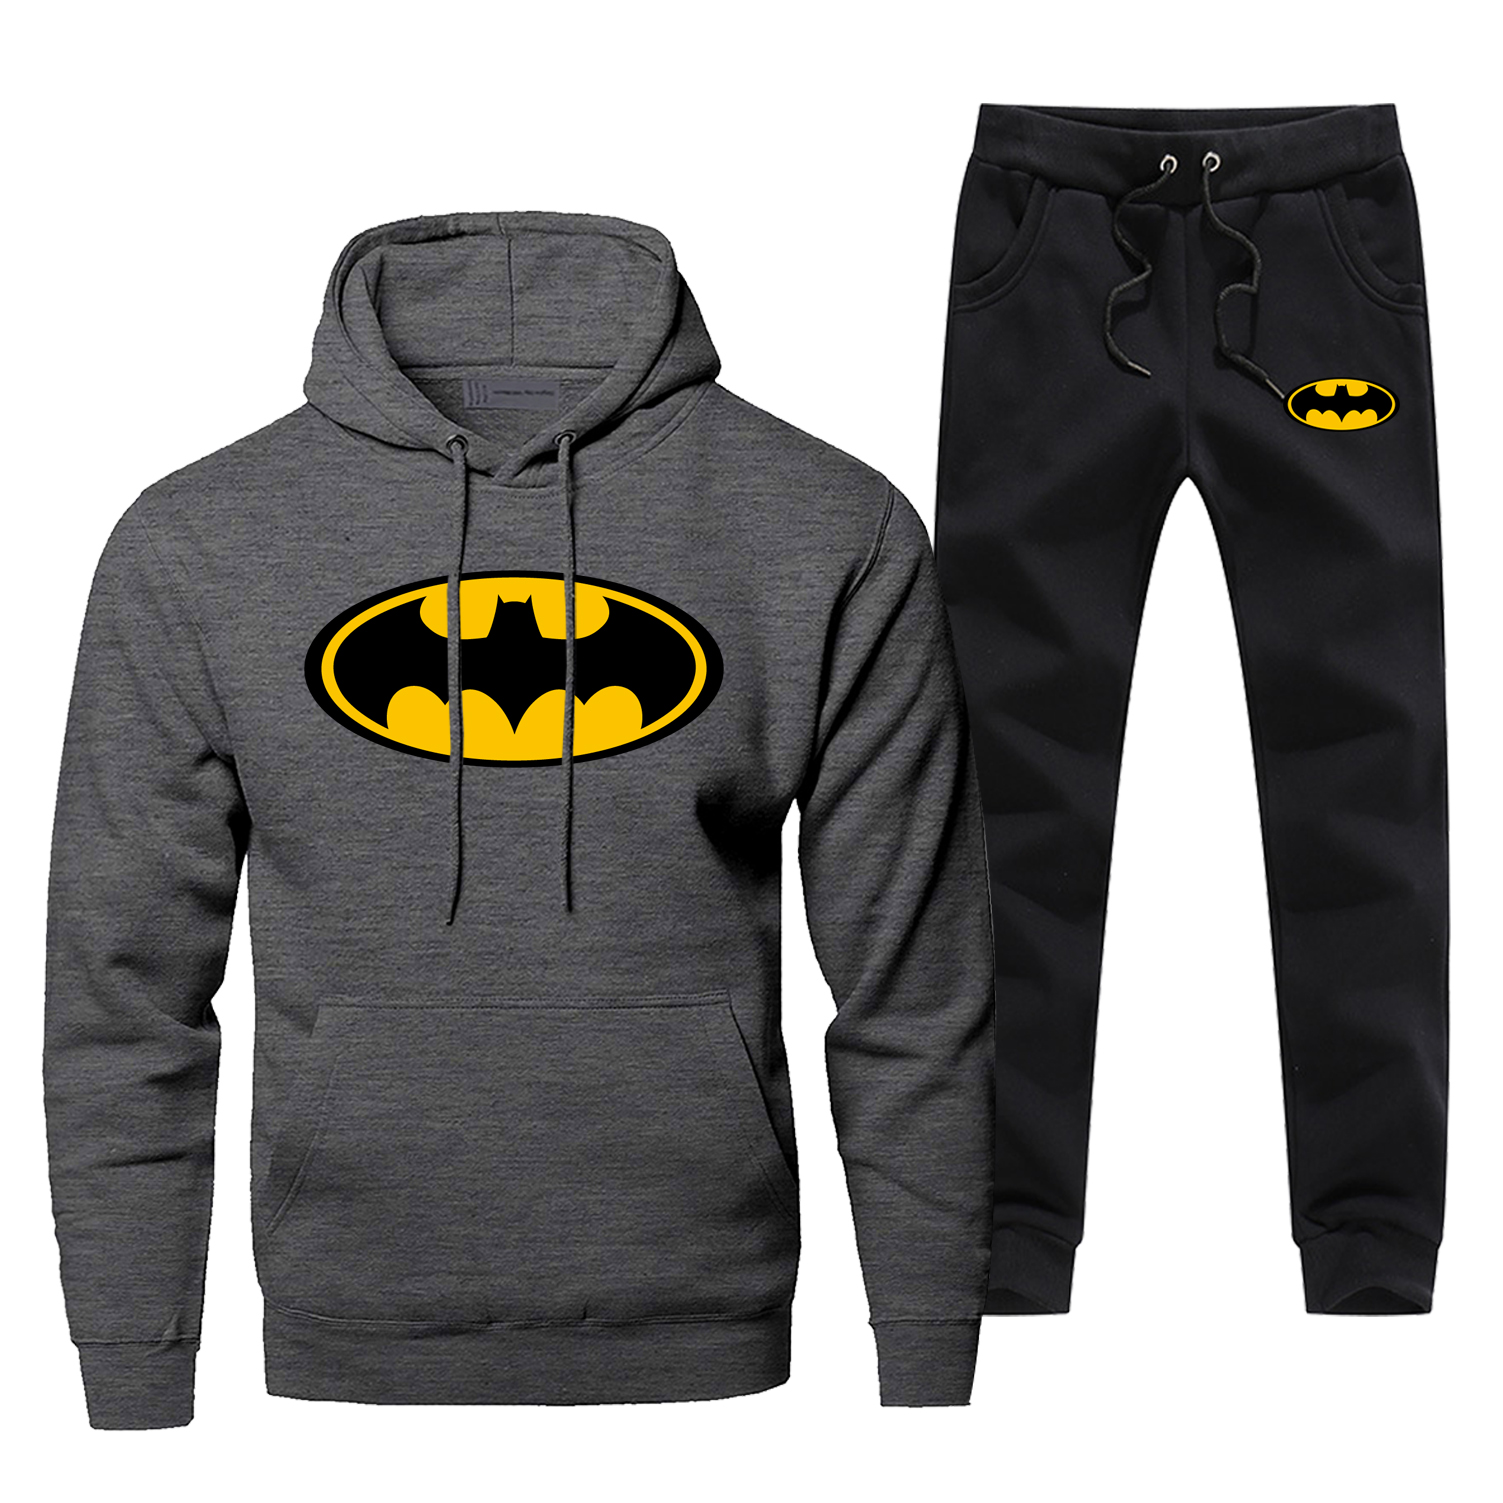 Fashion Marvel Superhero Batman LOGO Print Hoodies+pants Men Sets Casual Super Hero Sweatshirt Tracksuit Fleece Mens Sportswear